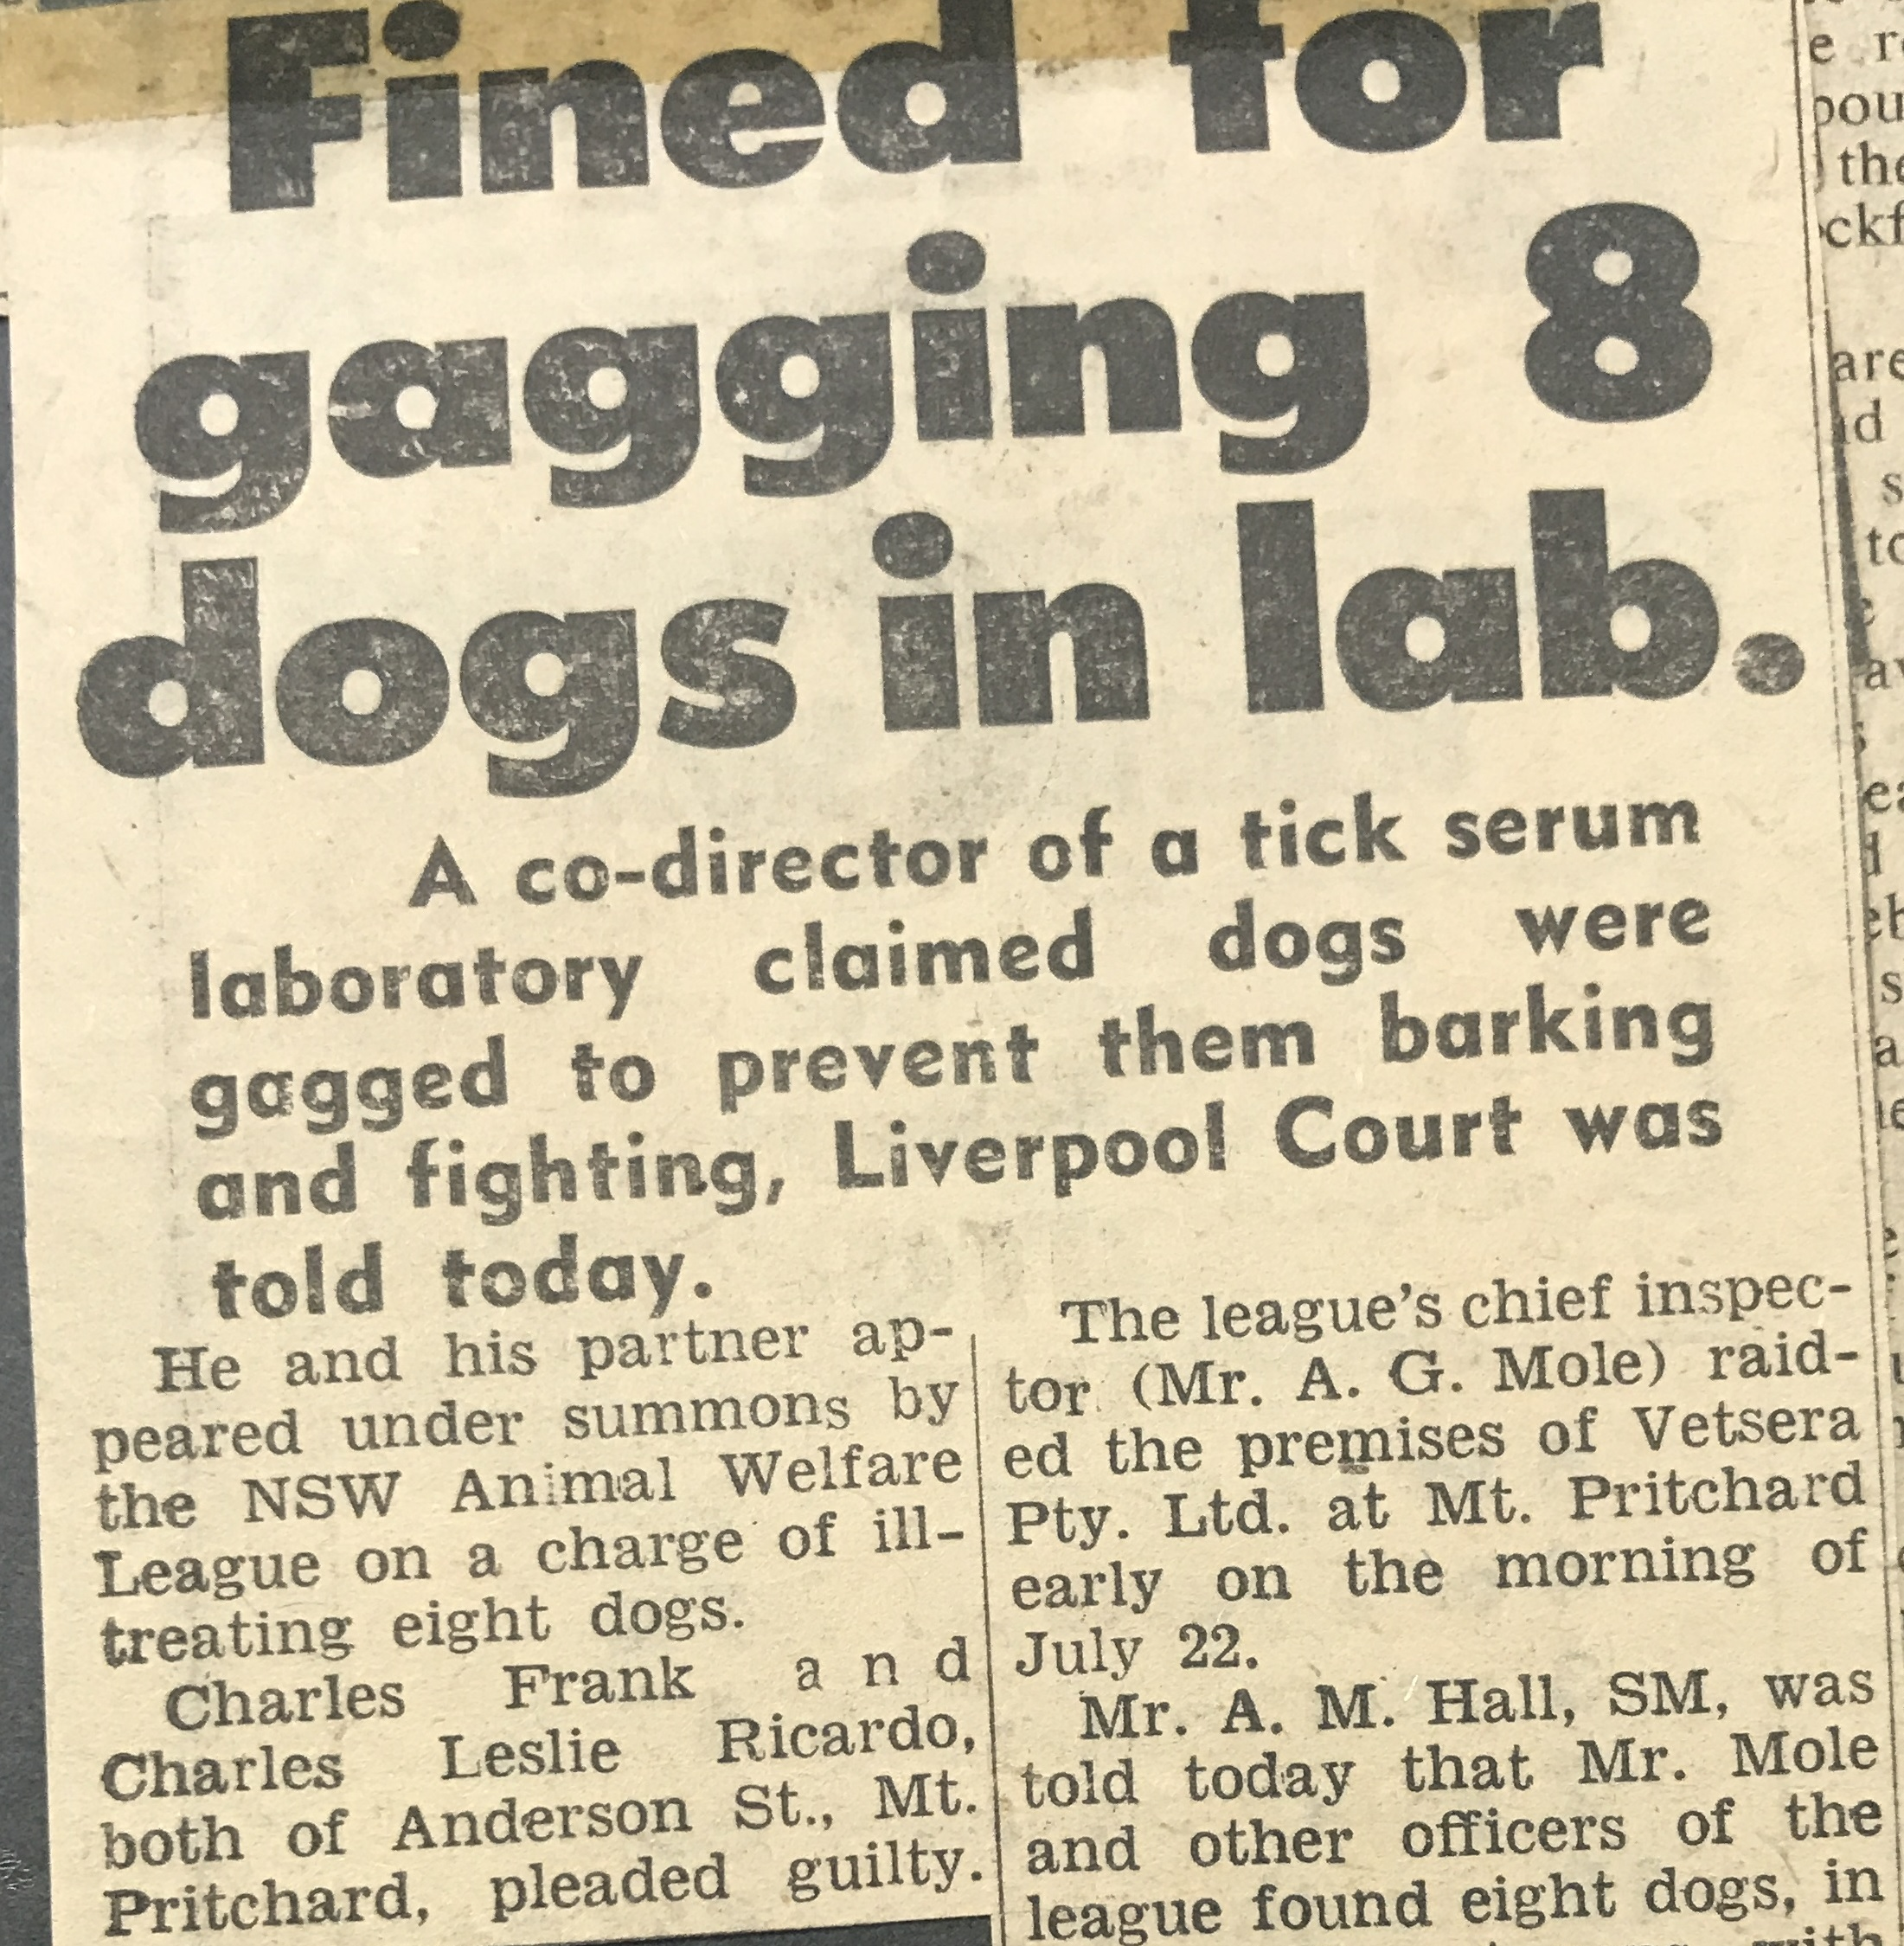 Fined for gagging 8 dogs in lab